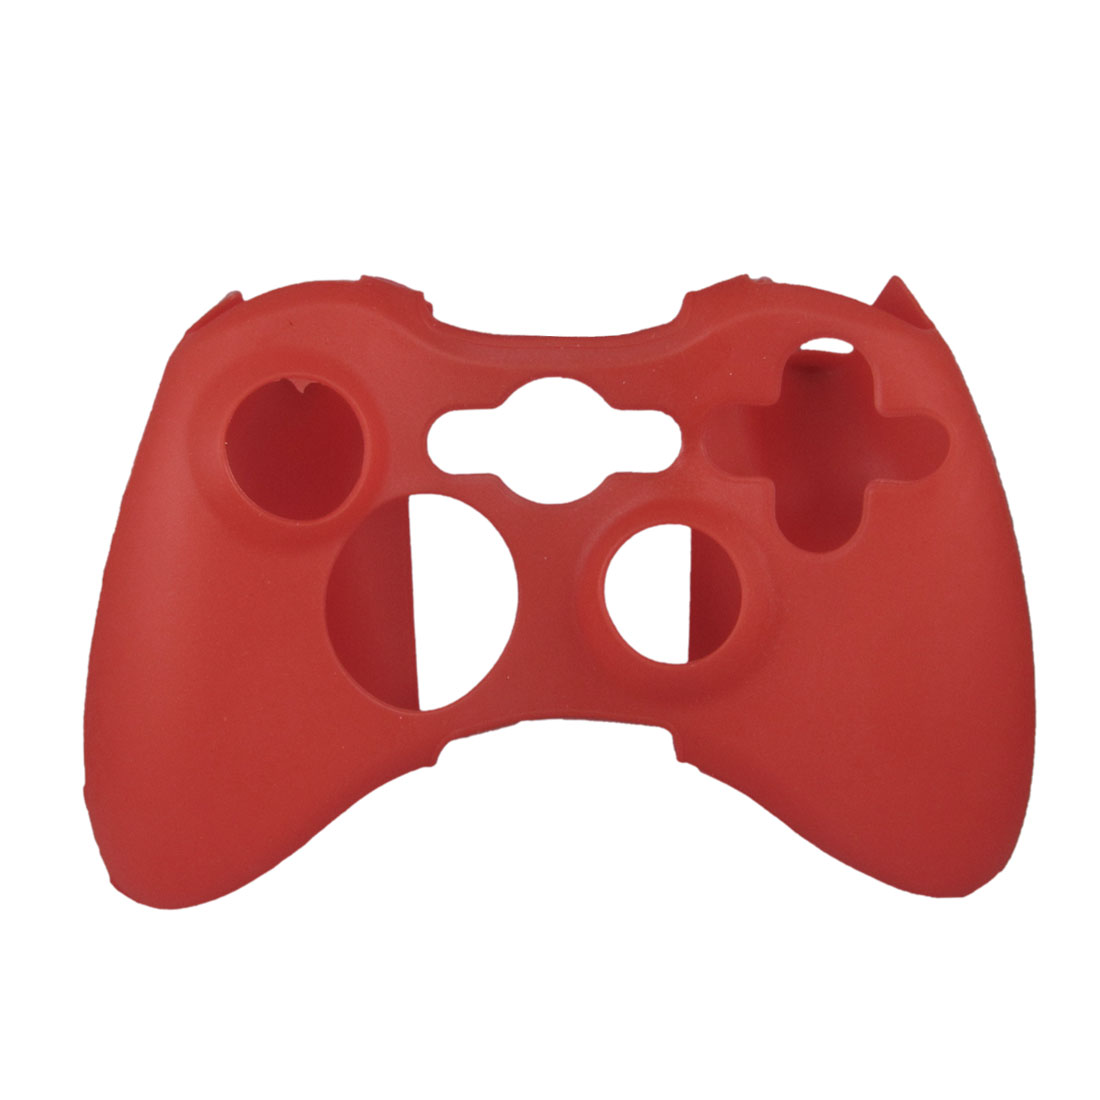 Red Soft Silicone Skin Case Cover for Microsoft Xbox 360 Controller